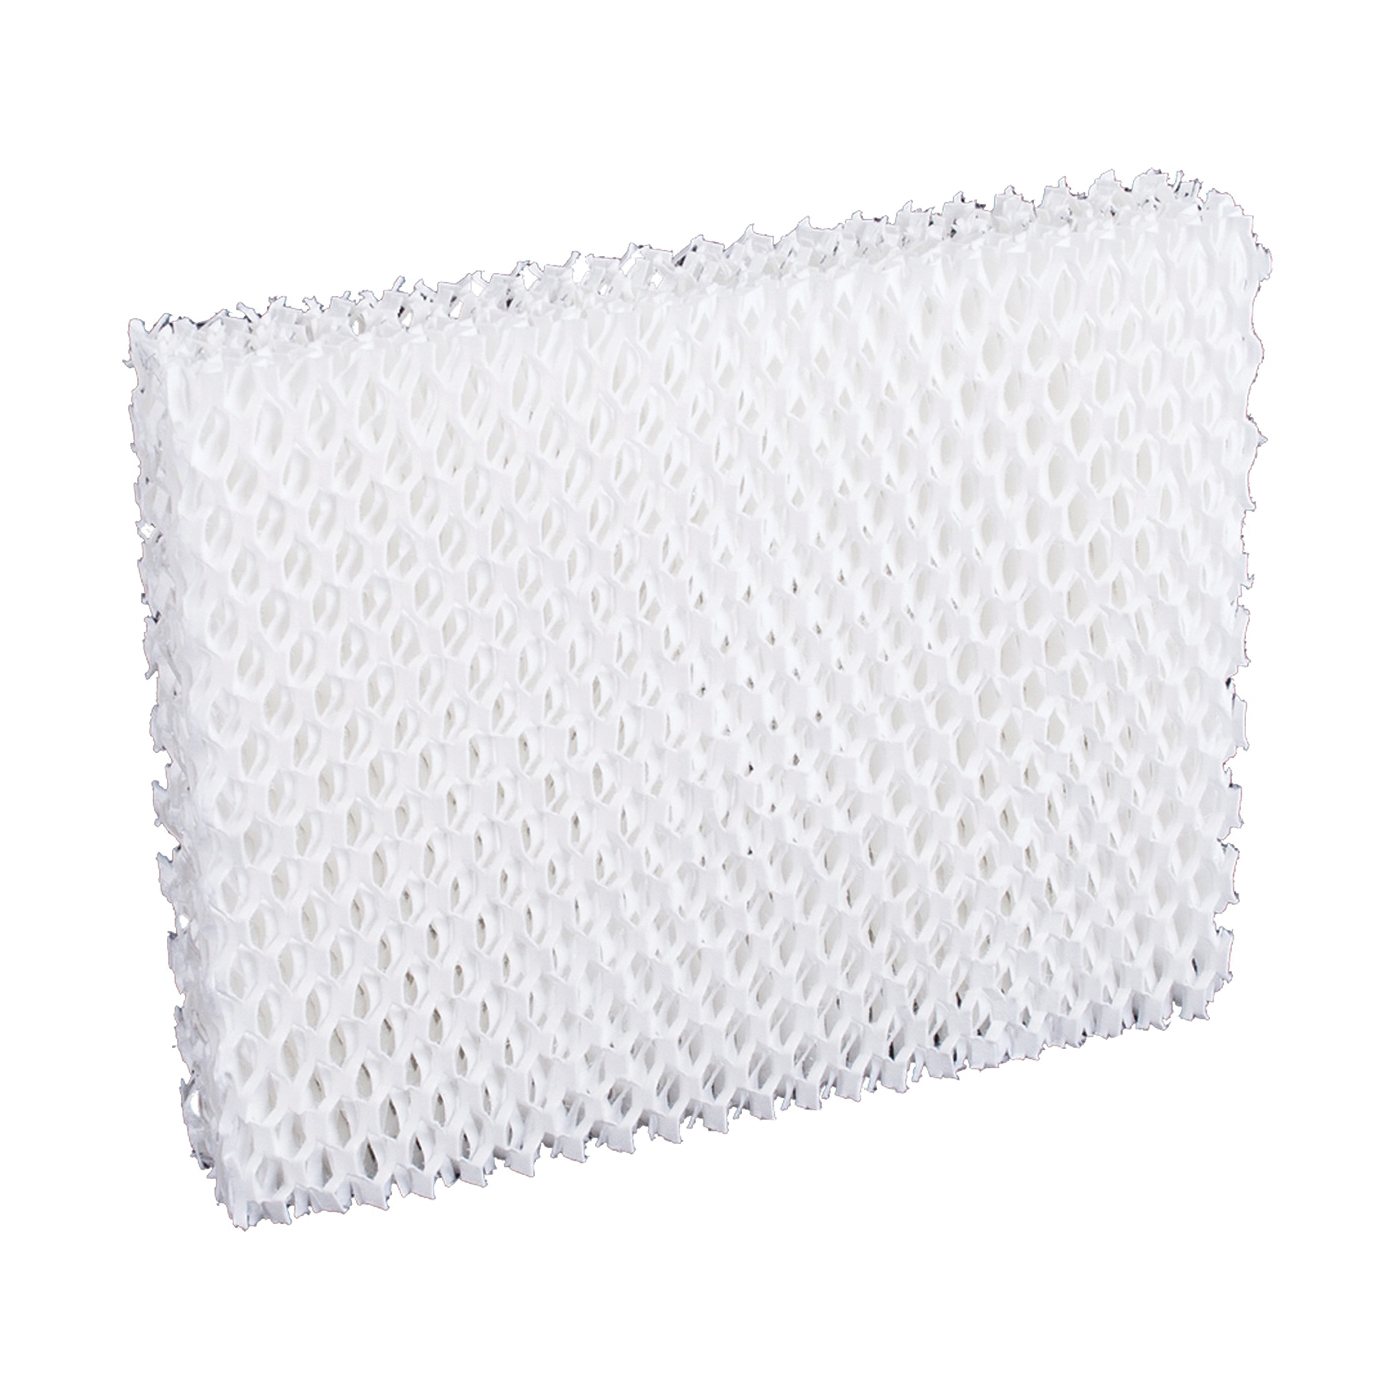 Picture of BestAir H55-C Wick Filter, 9-1/4 in L, 1-5/8 in W, White